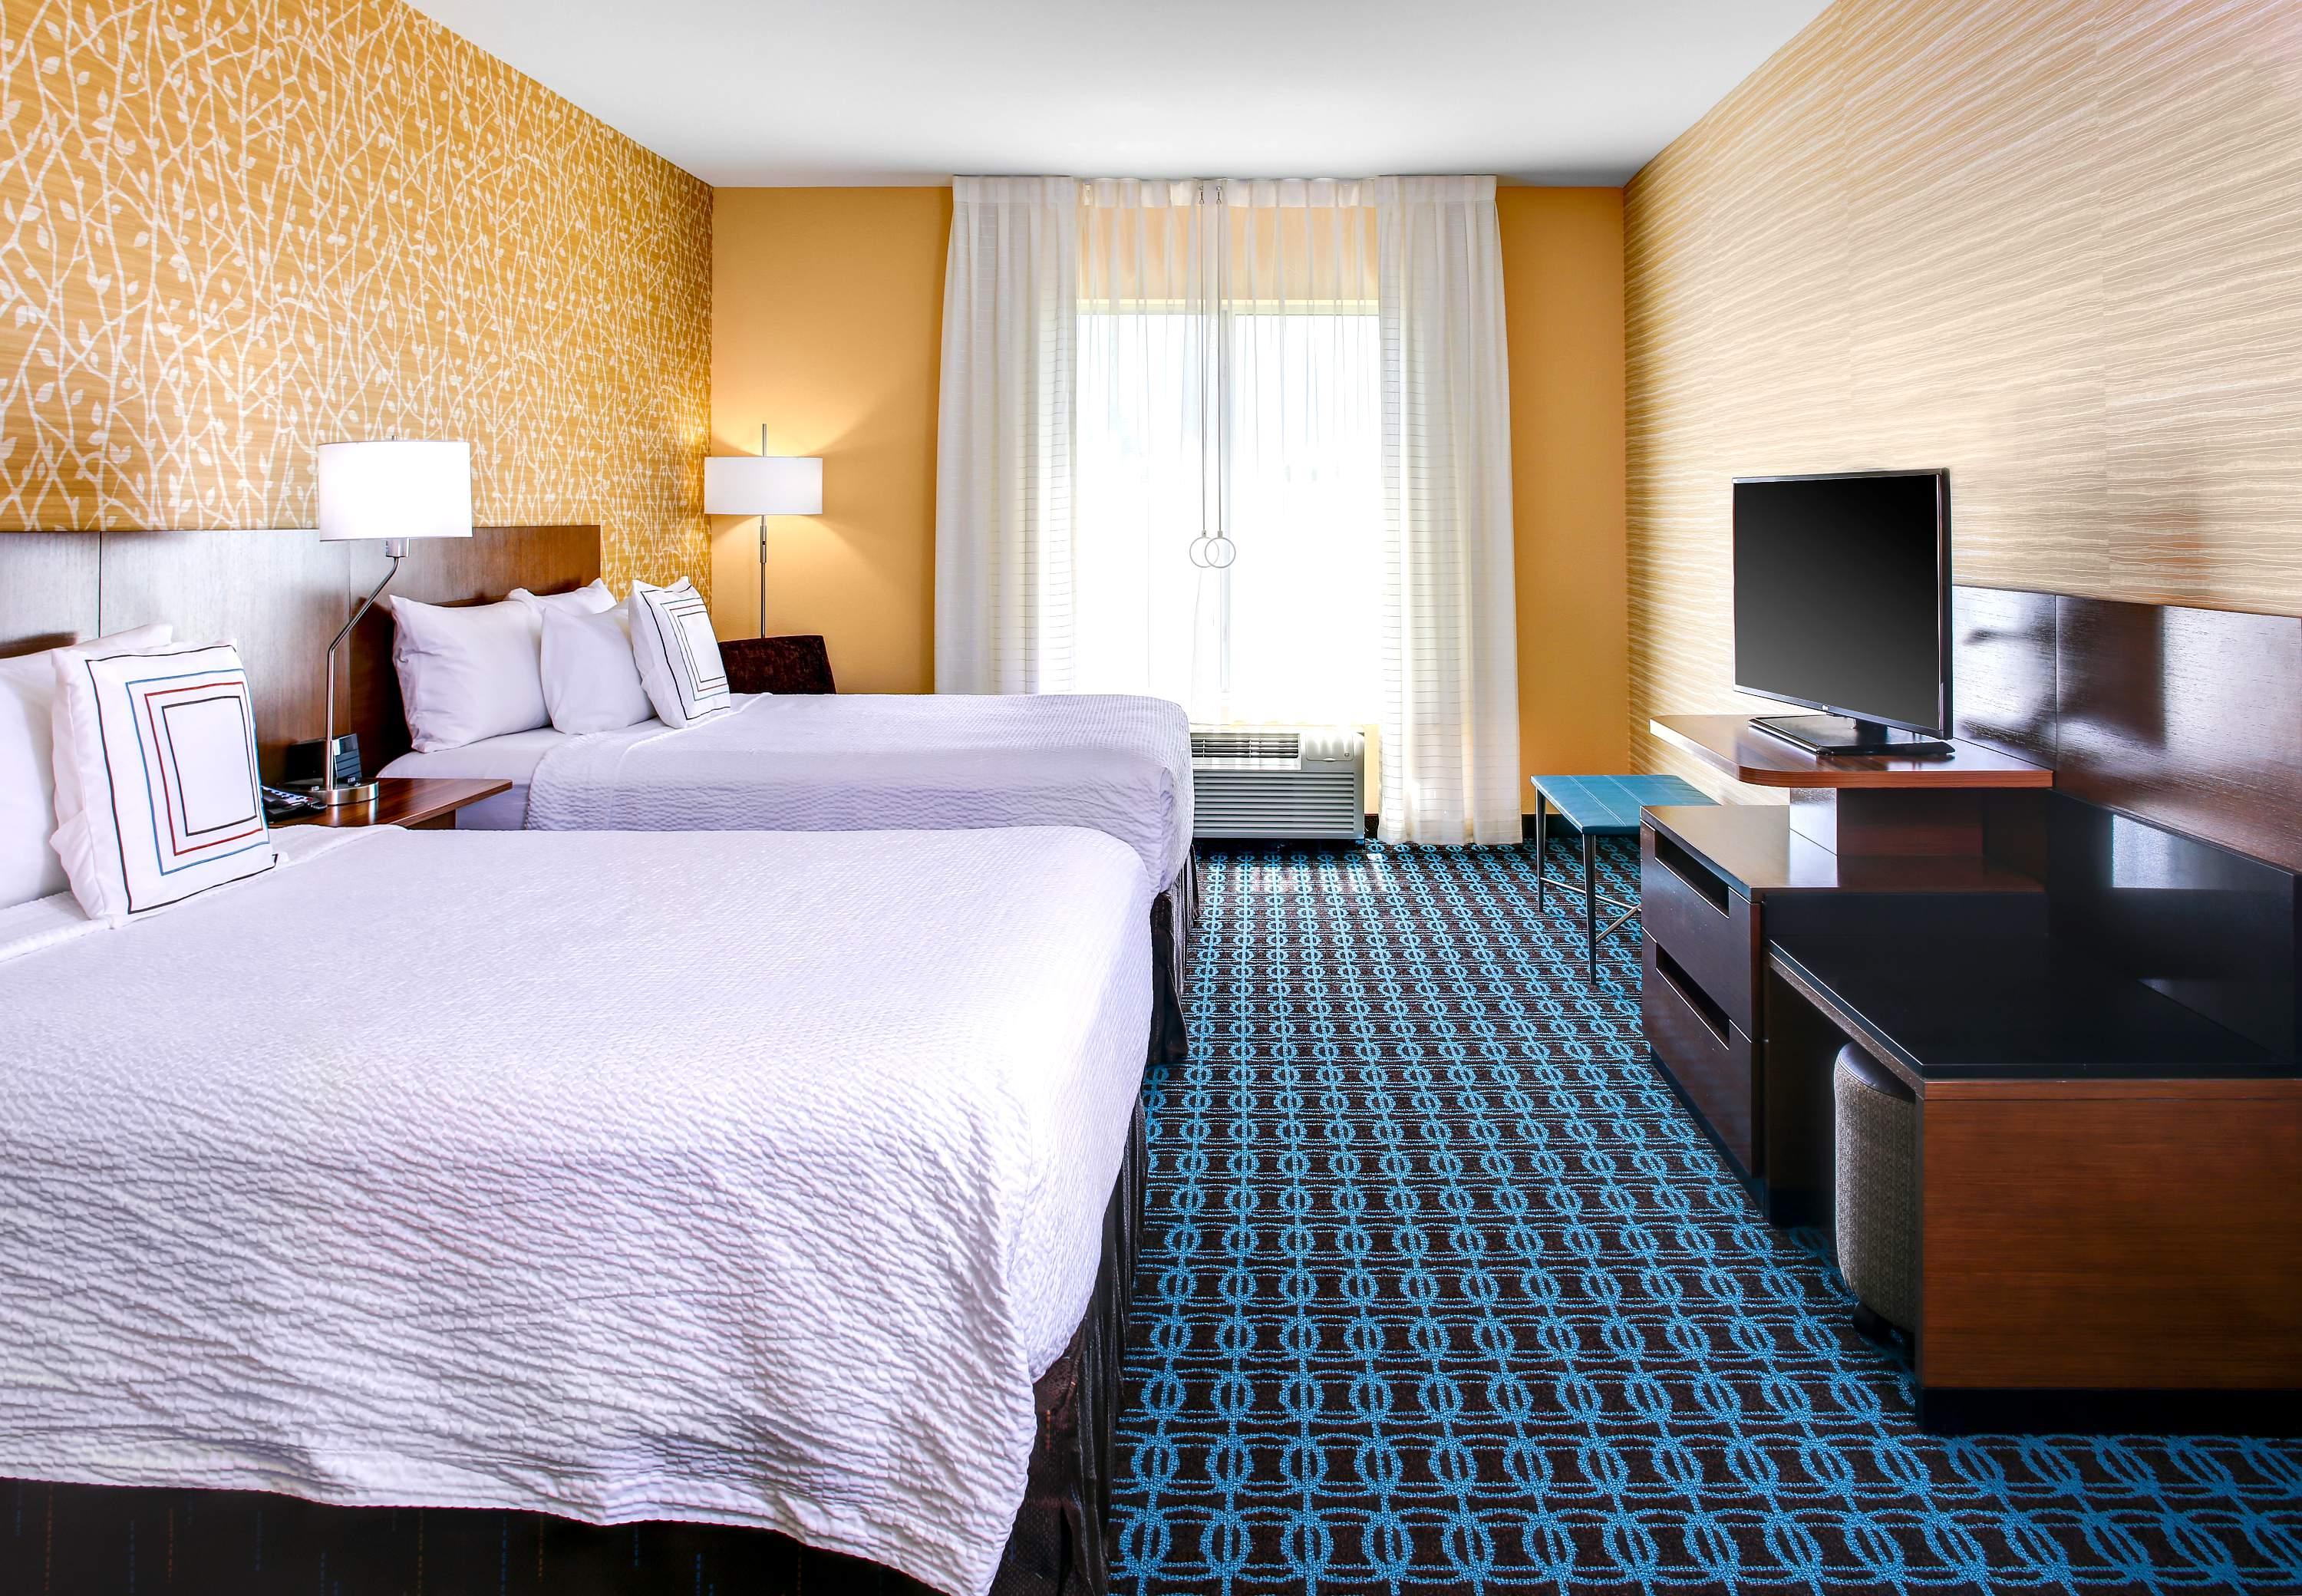 Fairfield Inn & Suites by Marriott Atlanta Stockbridge image 3